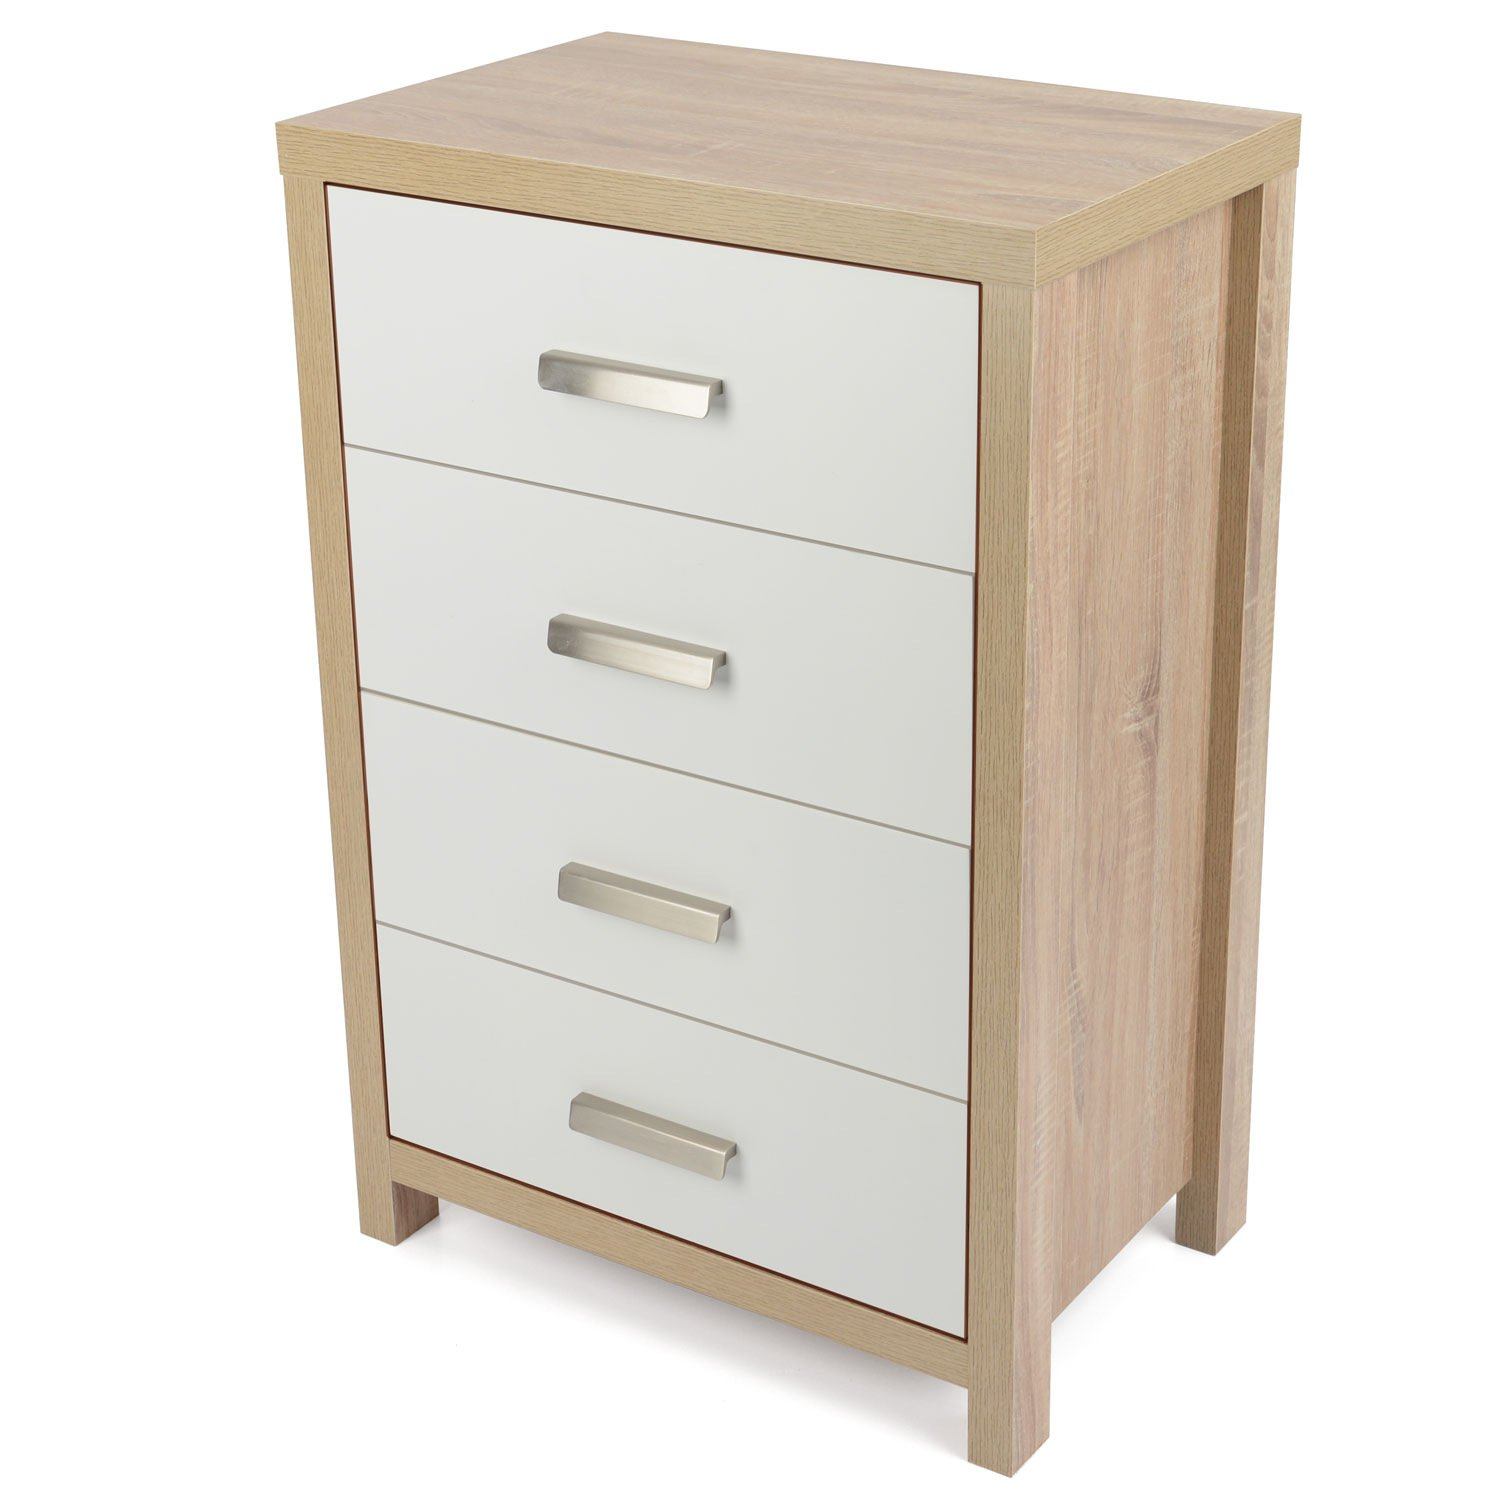 Modern Bedroom Chest Of Drawers Bianco Oak Effect White Wood 3 Drawer Chest Of Drawers Modern